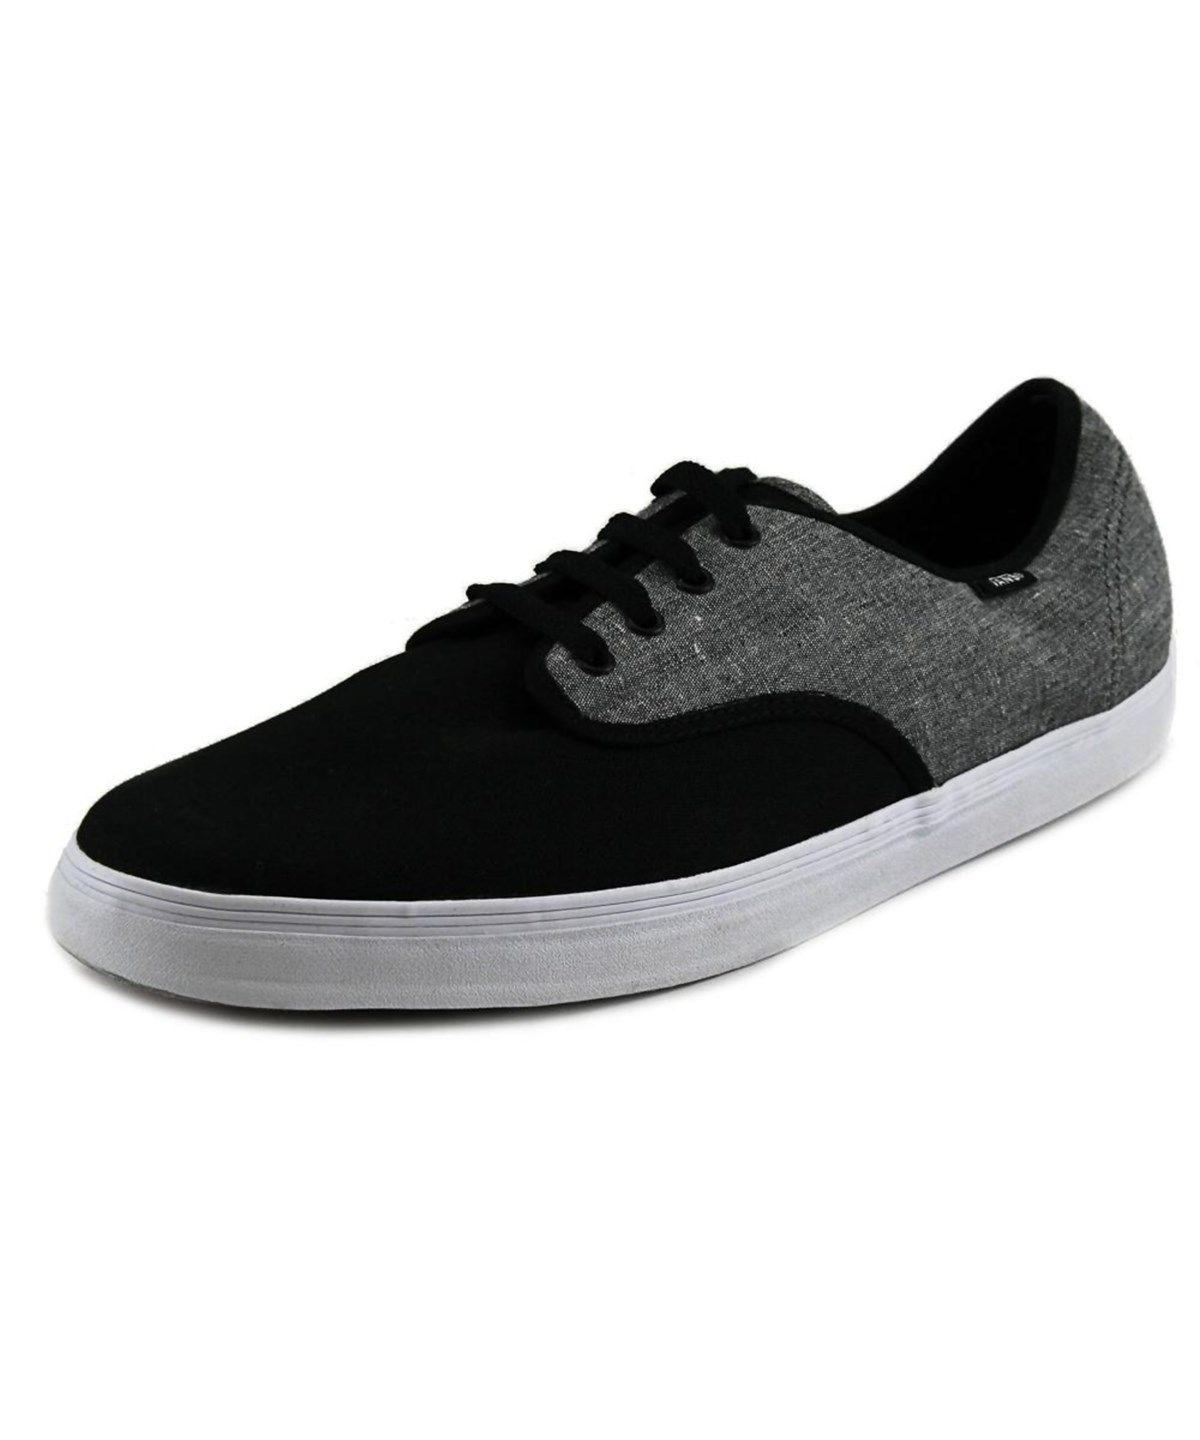 f68d4a3f59 Buy 2 OFF ANY vans madero grey CASE AND GET 70% OFF!